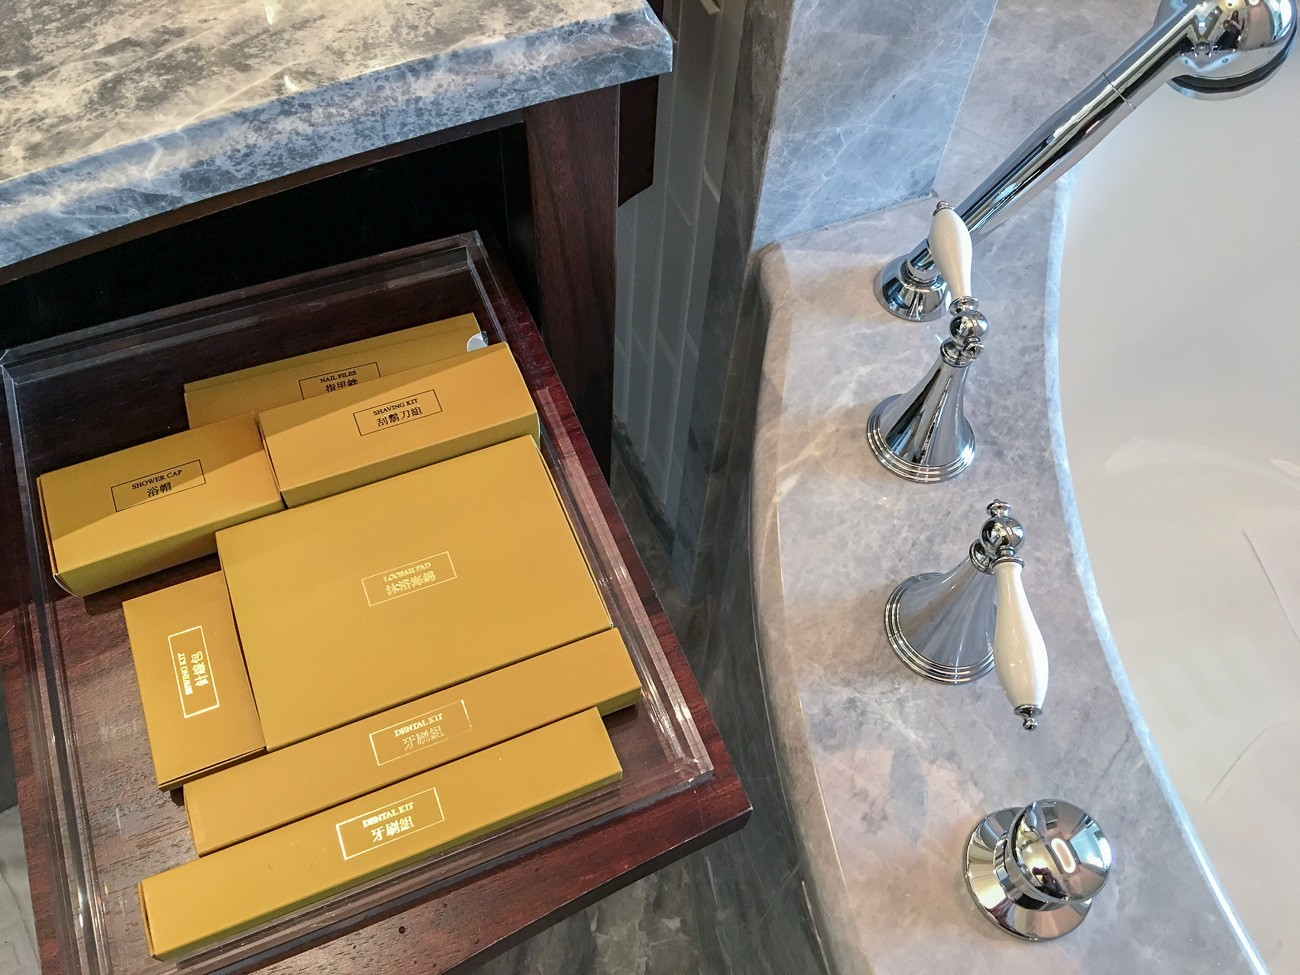 Things you may have forgotten to pack already in the bathroom at Mandarin Oriental, Taipei